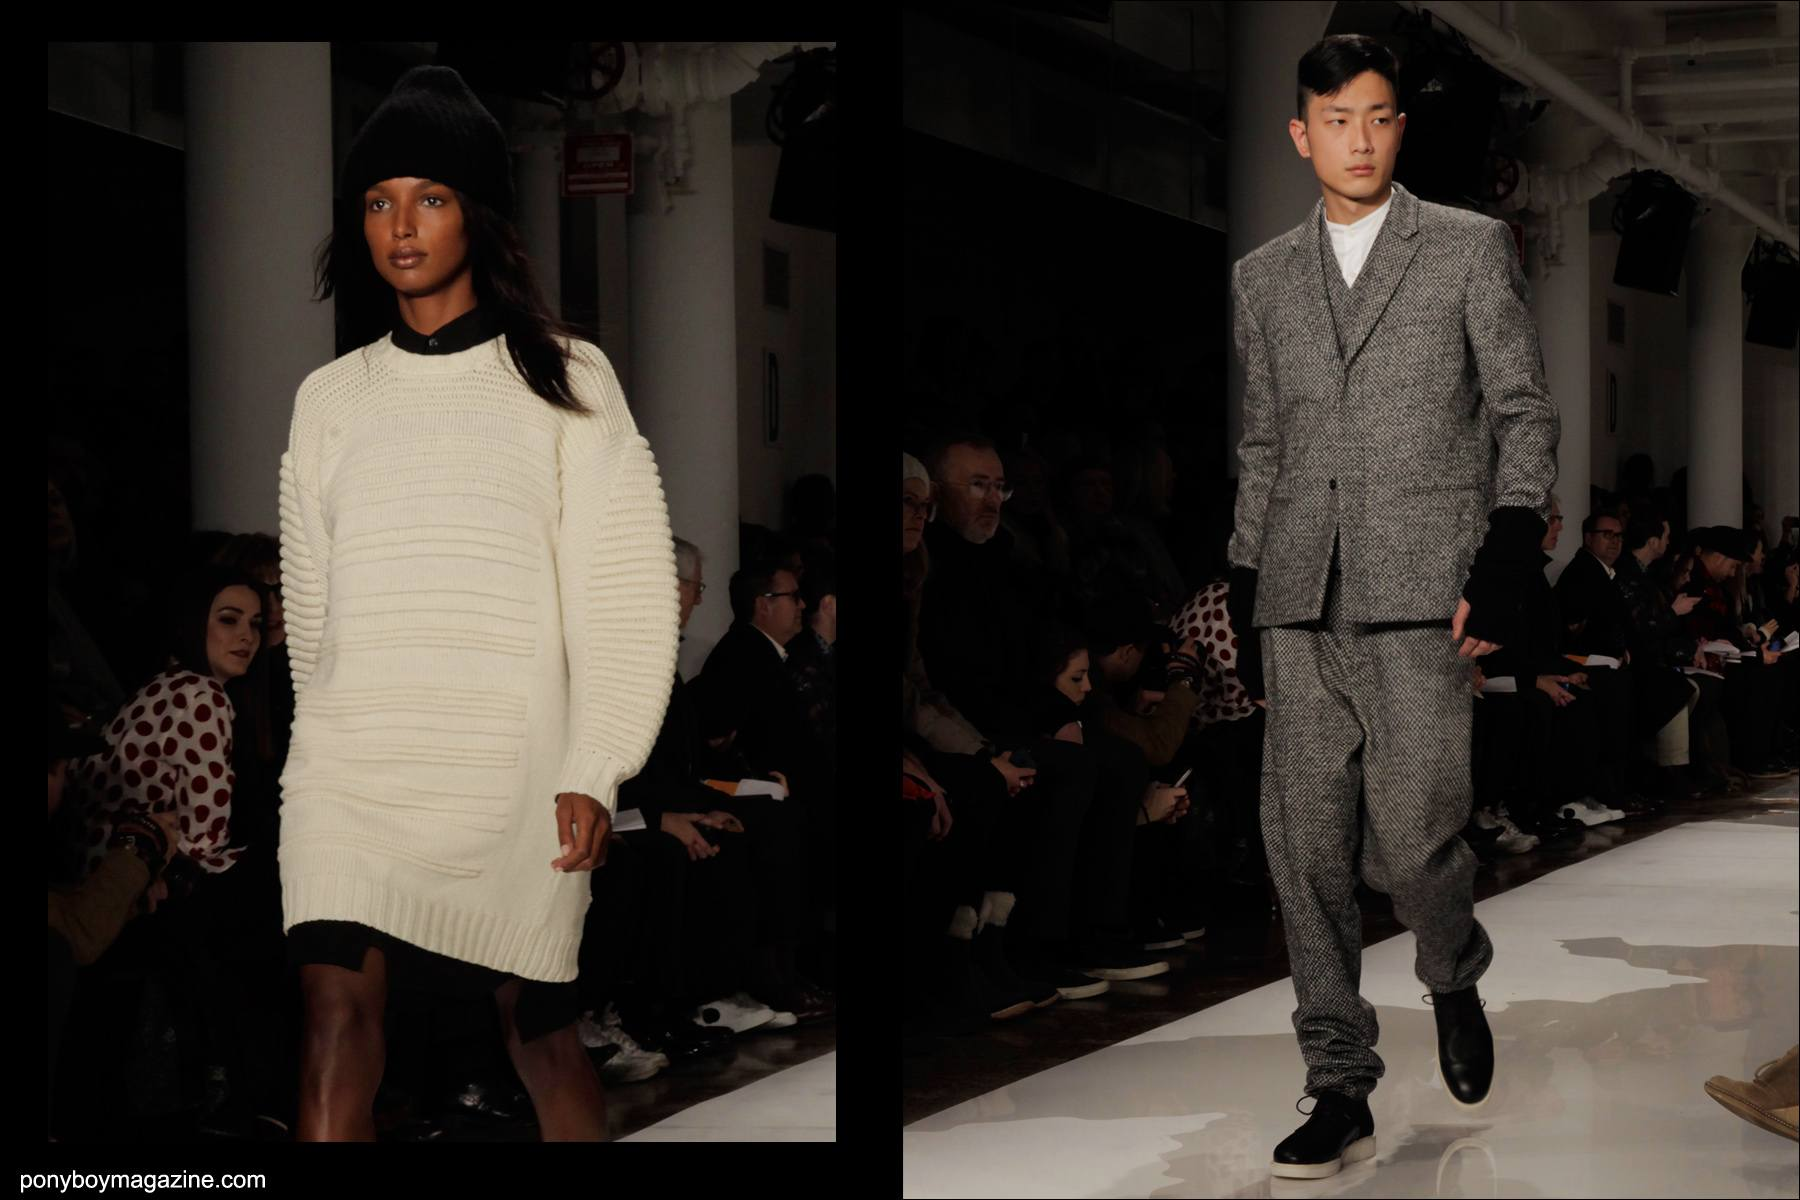 Public School Fall/Winter 2014 show at Milk Studios in downtown Manhattan, photographed by Ponyboy magazine photographer Alexander Thompson.